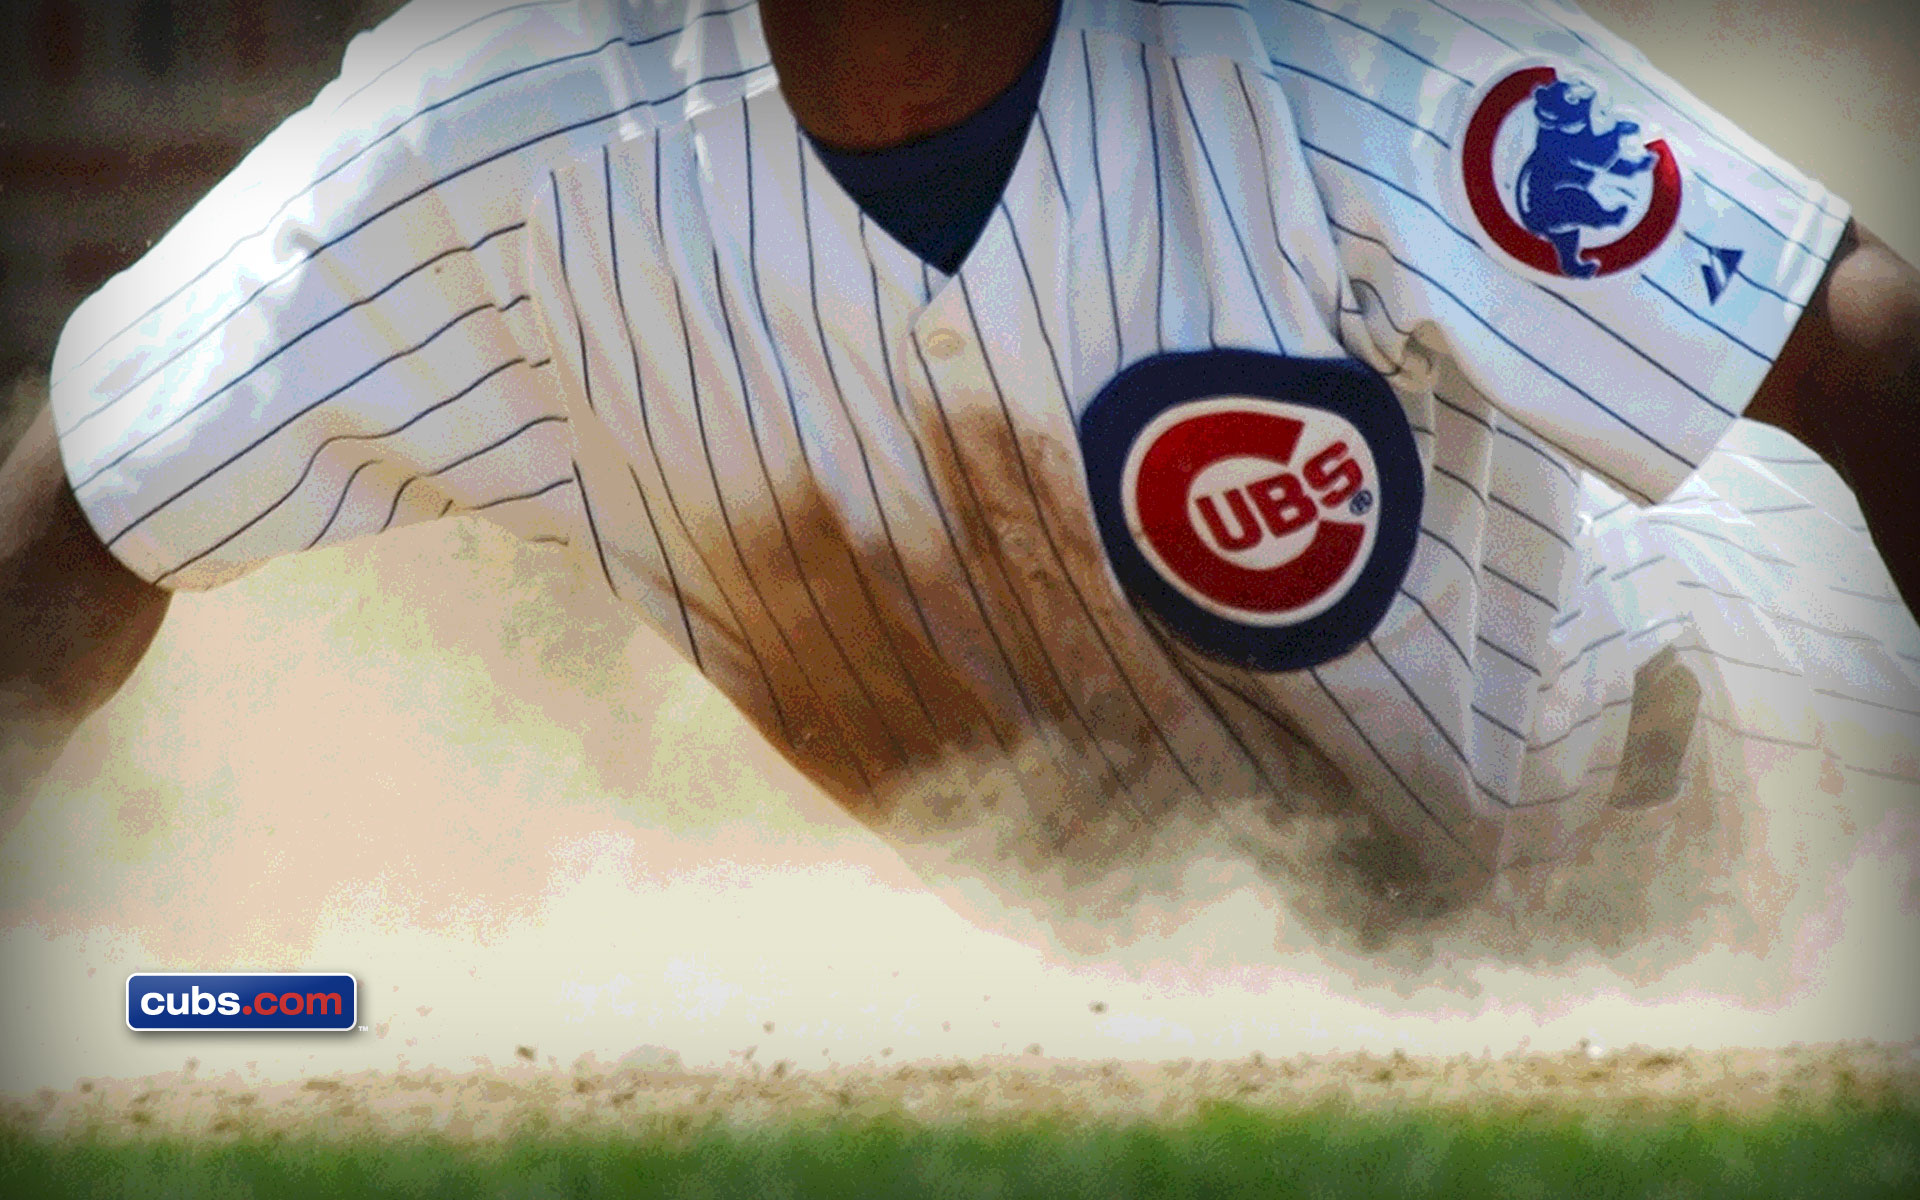 CHICAGO CUBS mlb baseball 51 wallpaper 1920x1200 232570 1920x1200